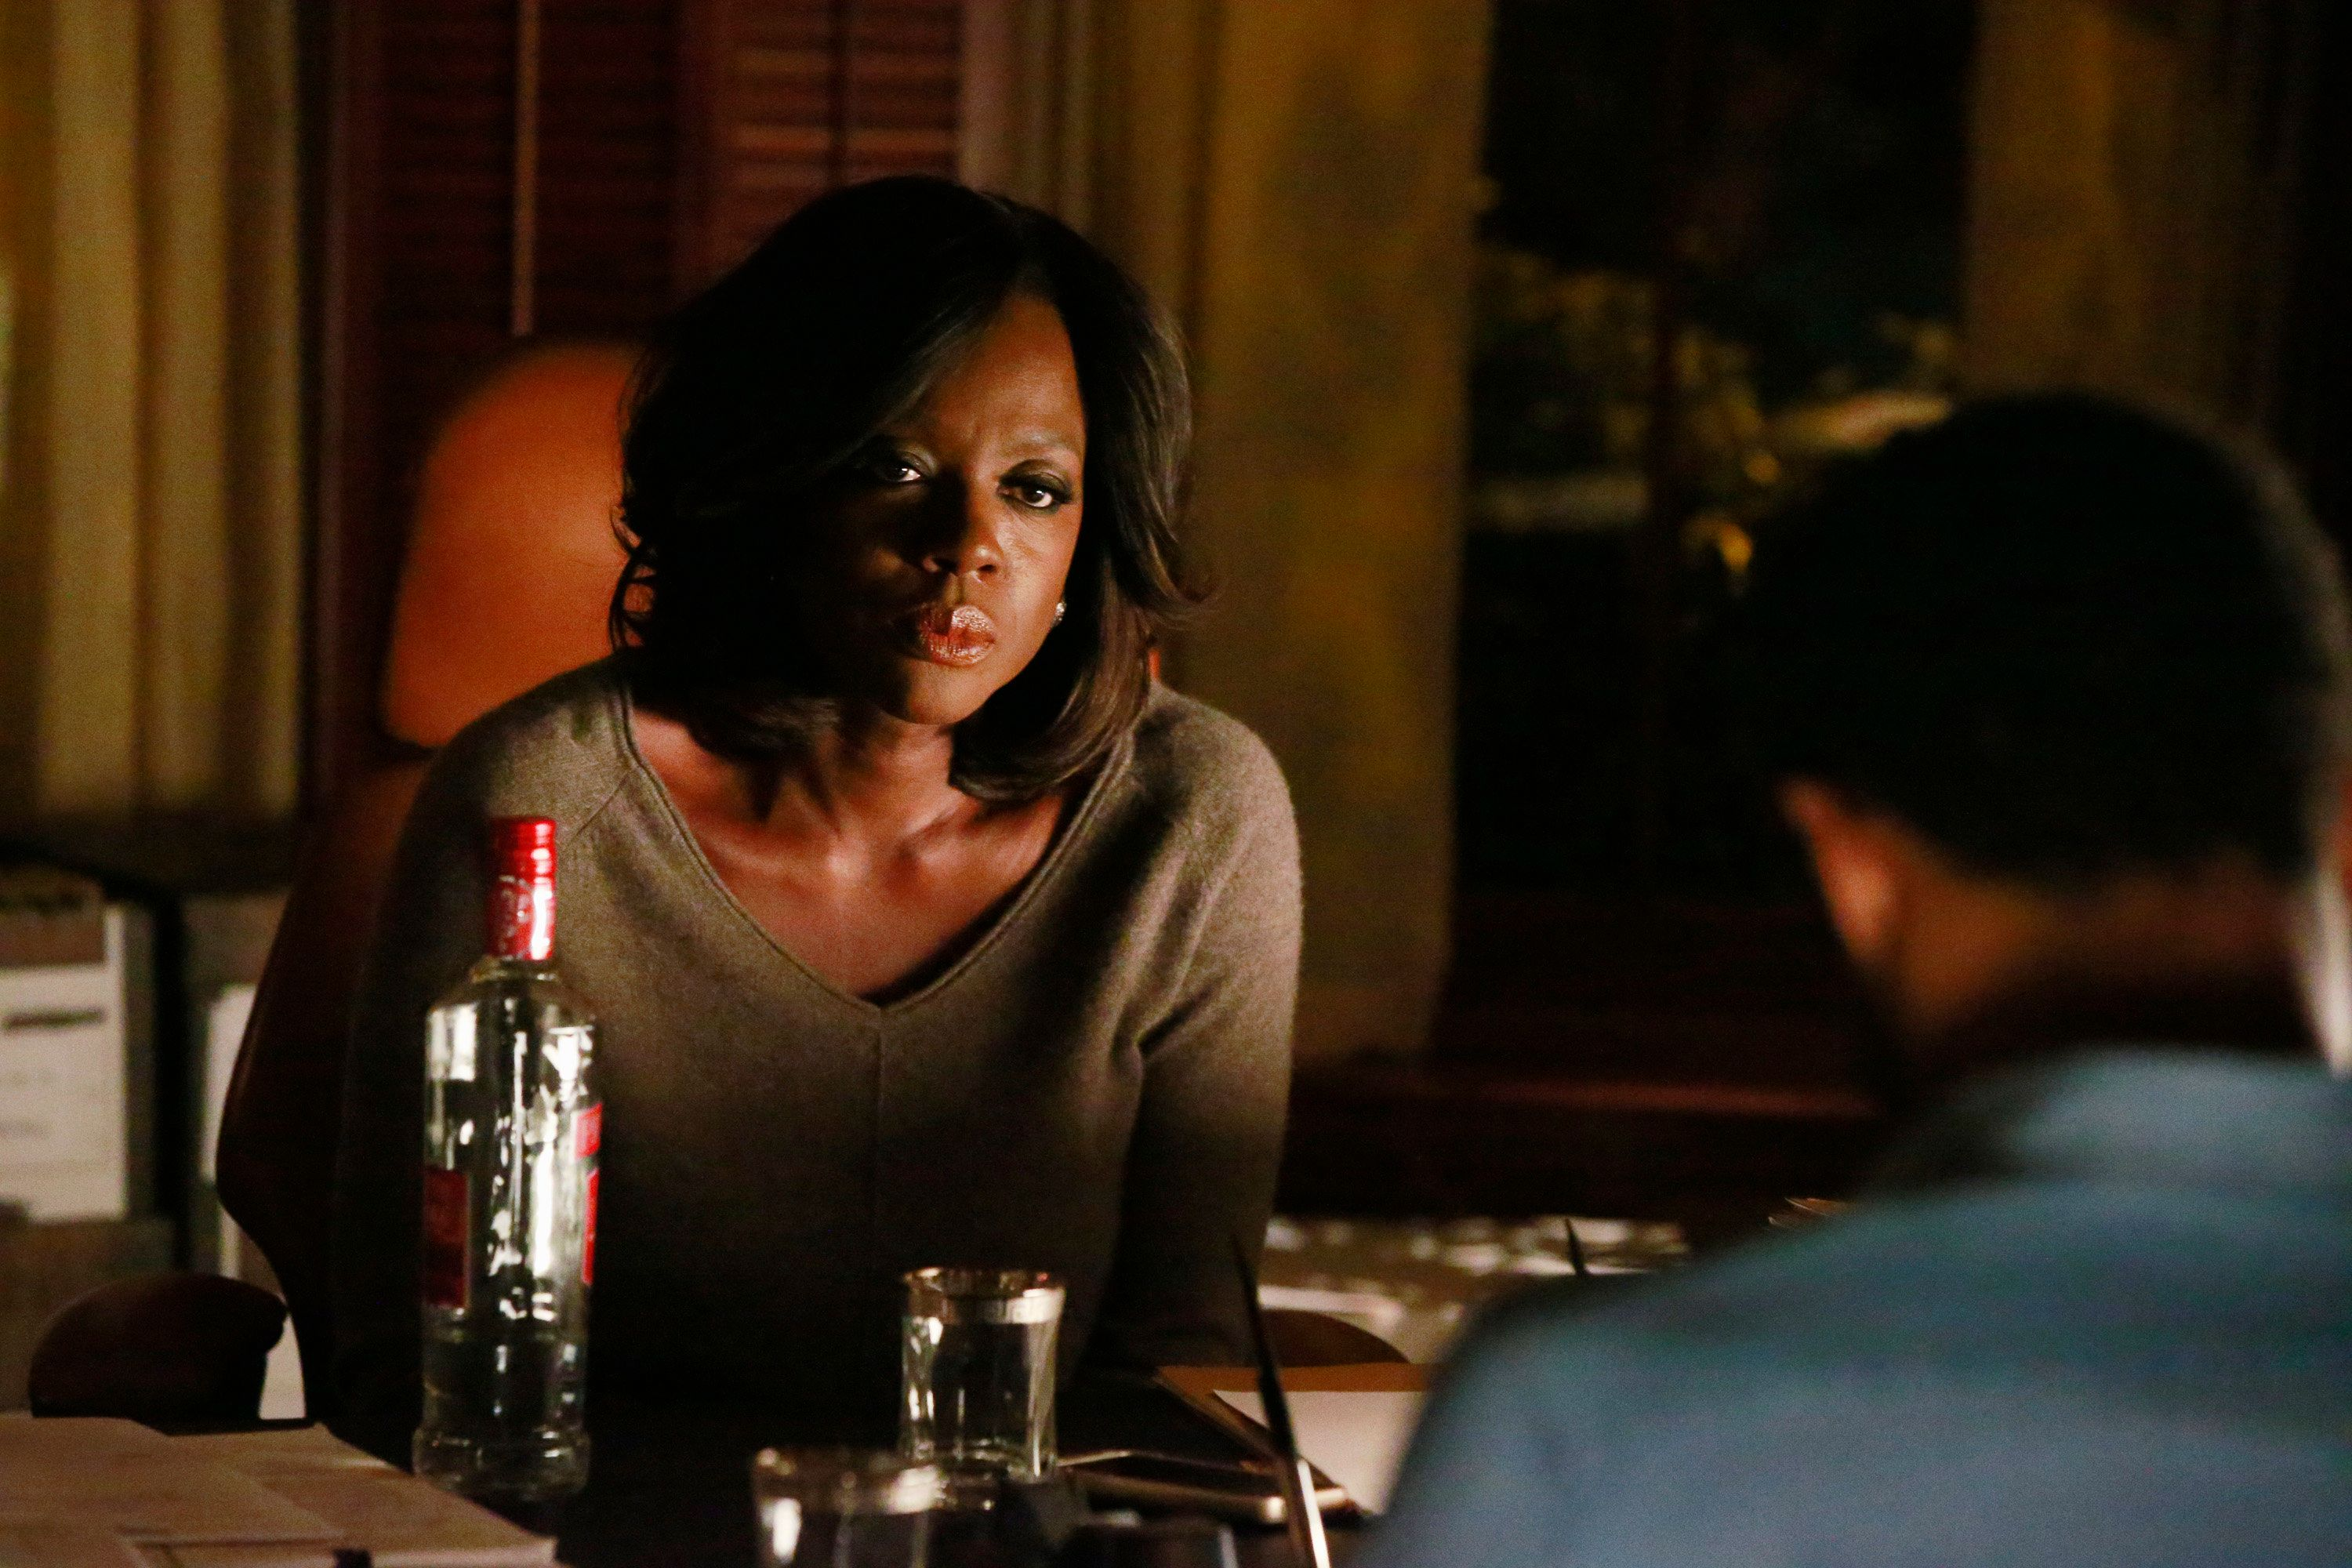 HOW TO GET AWAY WITH MURDER - 'There's My Baby' - The Keating 5 are called into questioning by A.D.A Denver about the night Emily Sinclair was murdered. Meanwhile, Caleb goes missing as the manhunt for Philip intensifies. In flashback, Annalise's tactics in the Mahoney case leads to a devastating result, on 'How to Get Away with Murder,' THURSDAY, MARCH 10 (10:00-11:00 p.m. EST) on the ABC Television Network. (Photo by Mitch Haaseth/ABC via Getty Images) VIOLA DAVIS